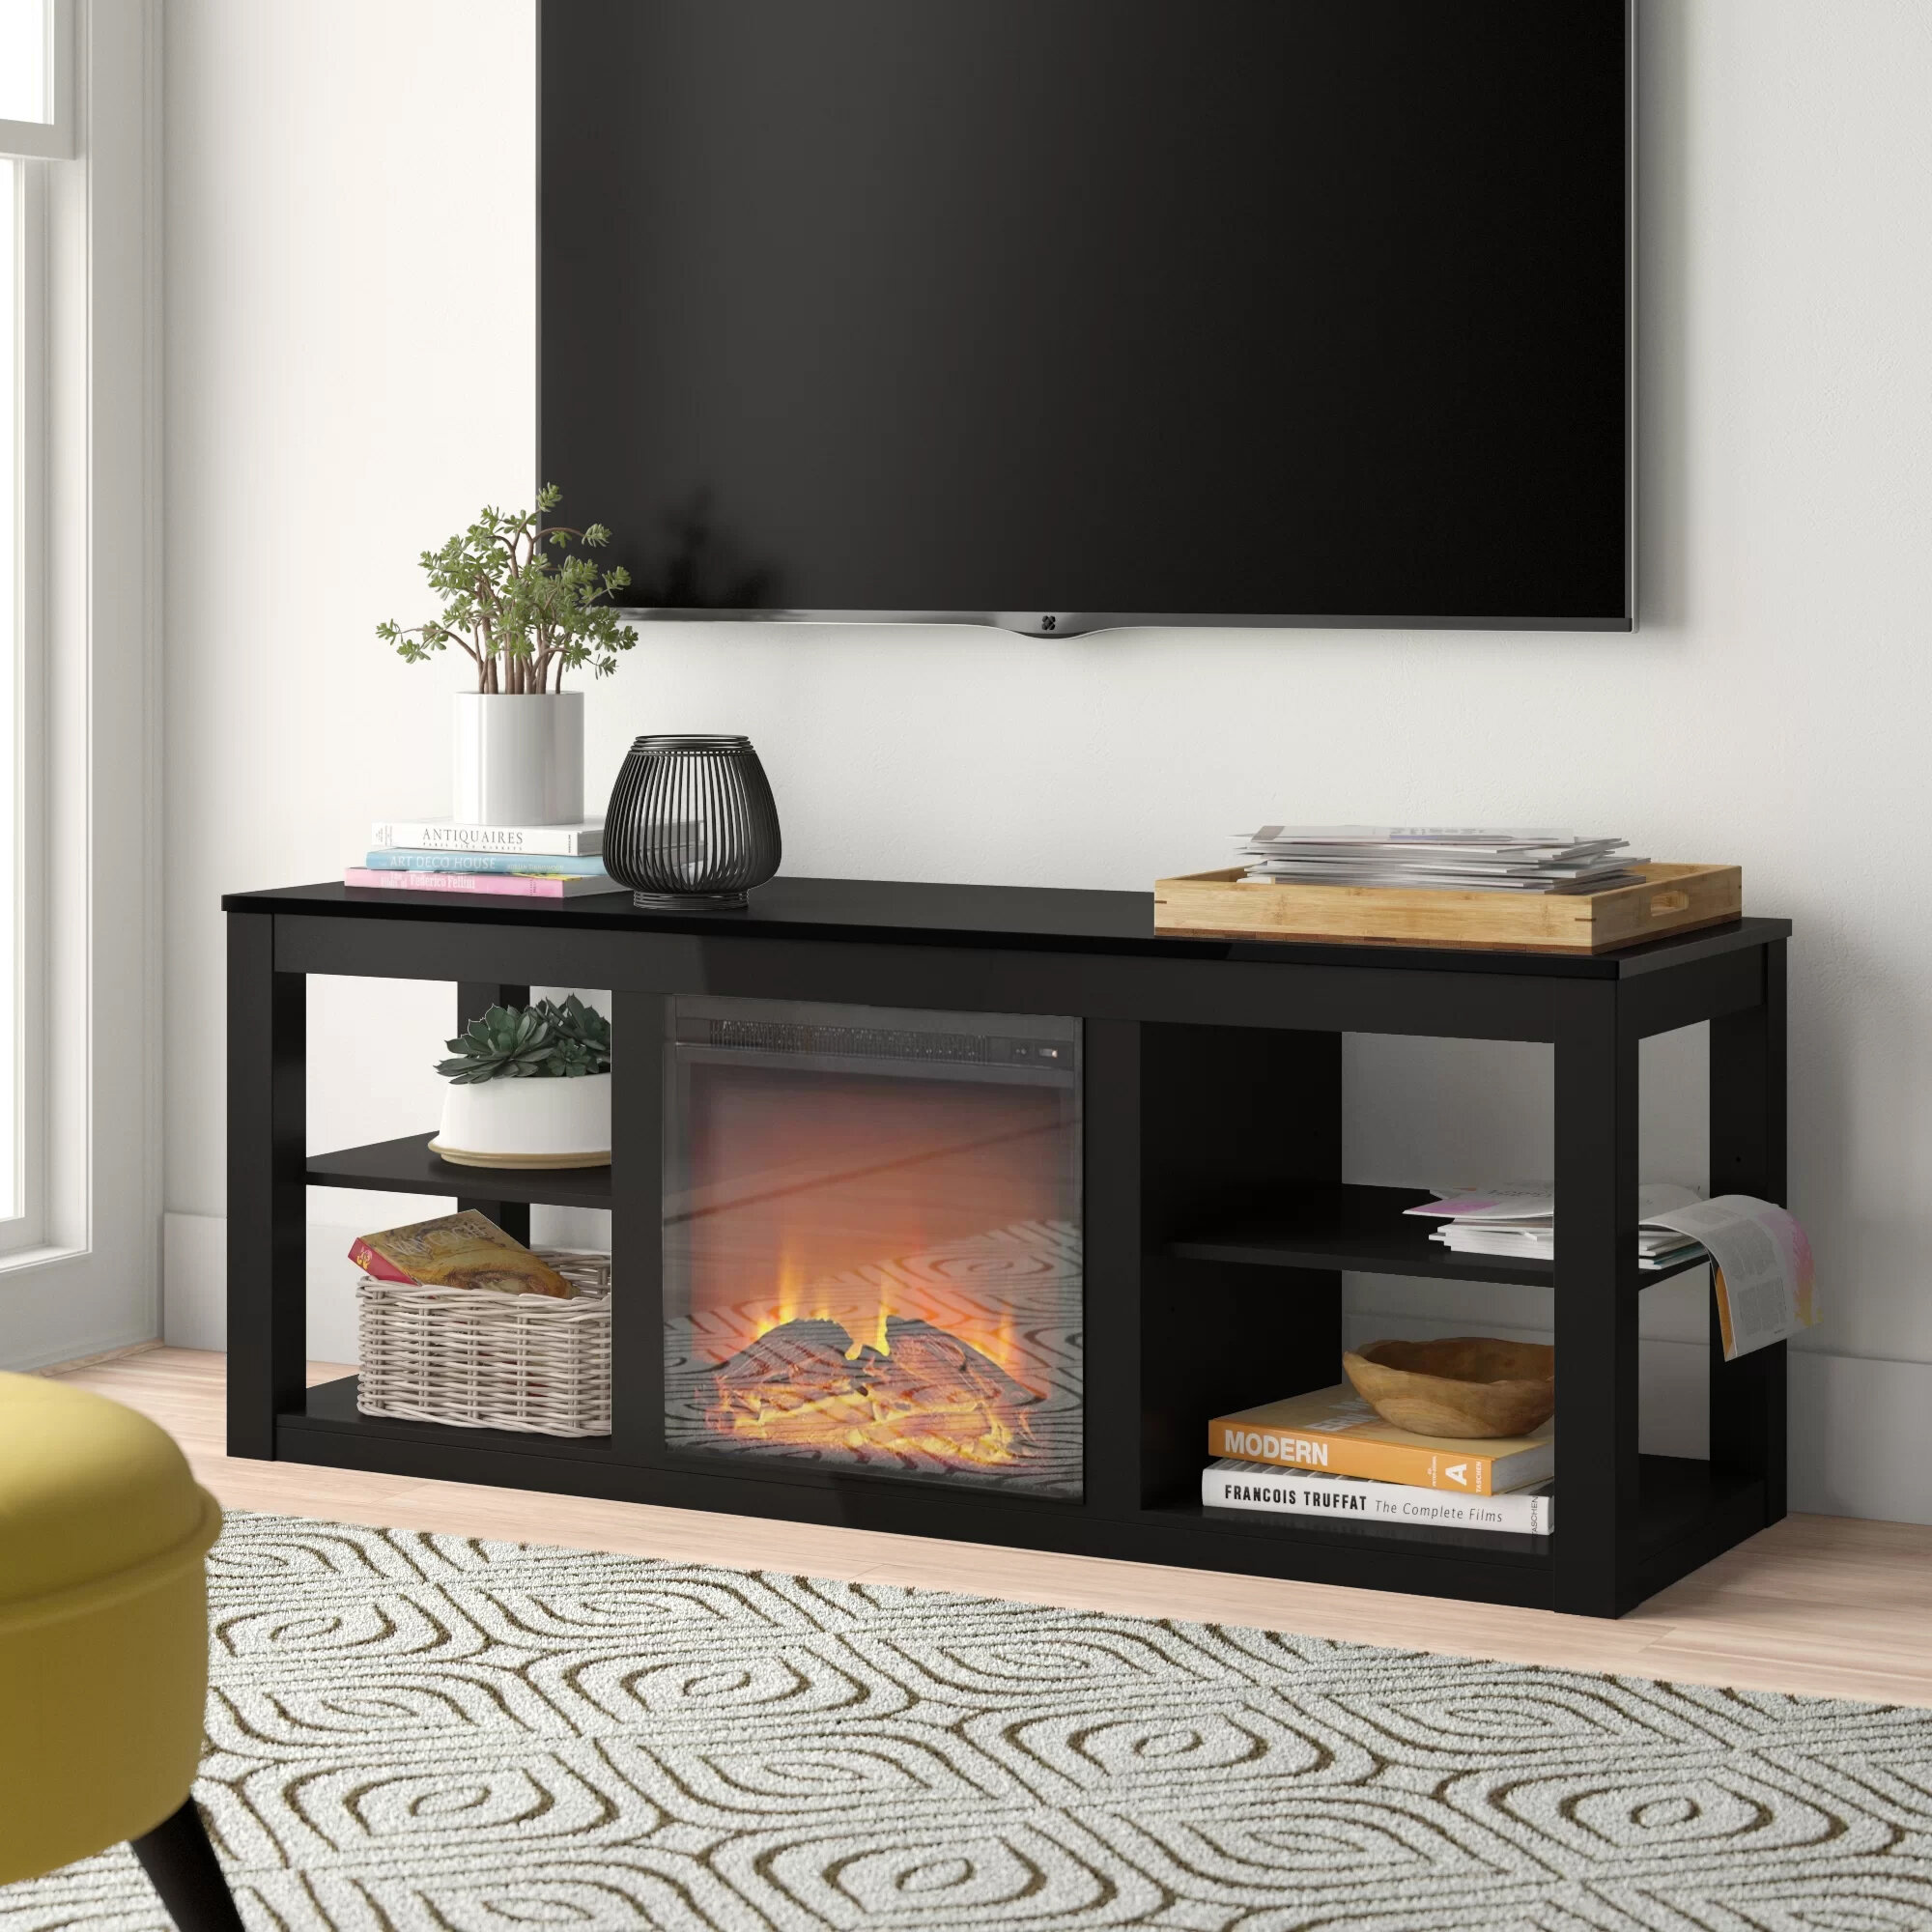 Zipcode Design Rickard Tv Stand For Tvs Up To 65 With Fireplace Included Reviews Wayfair